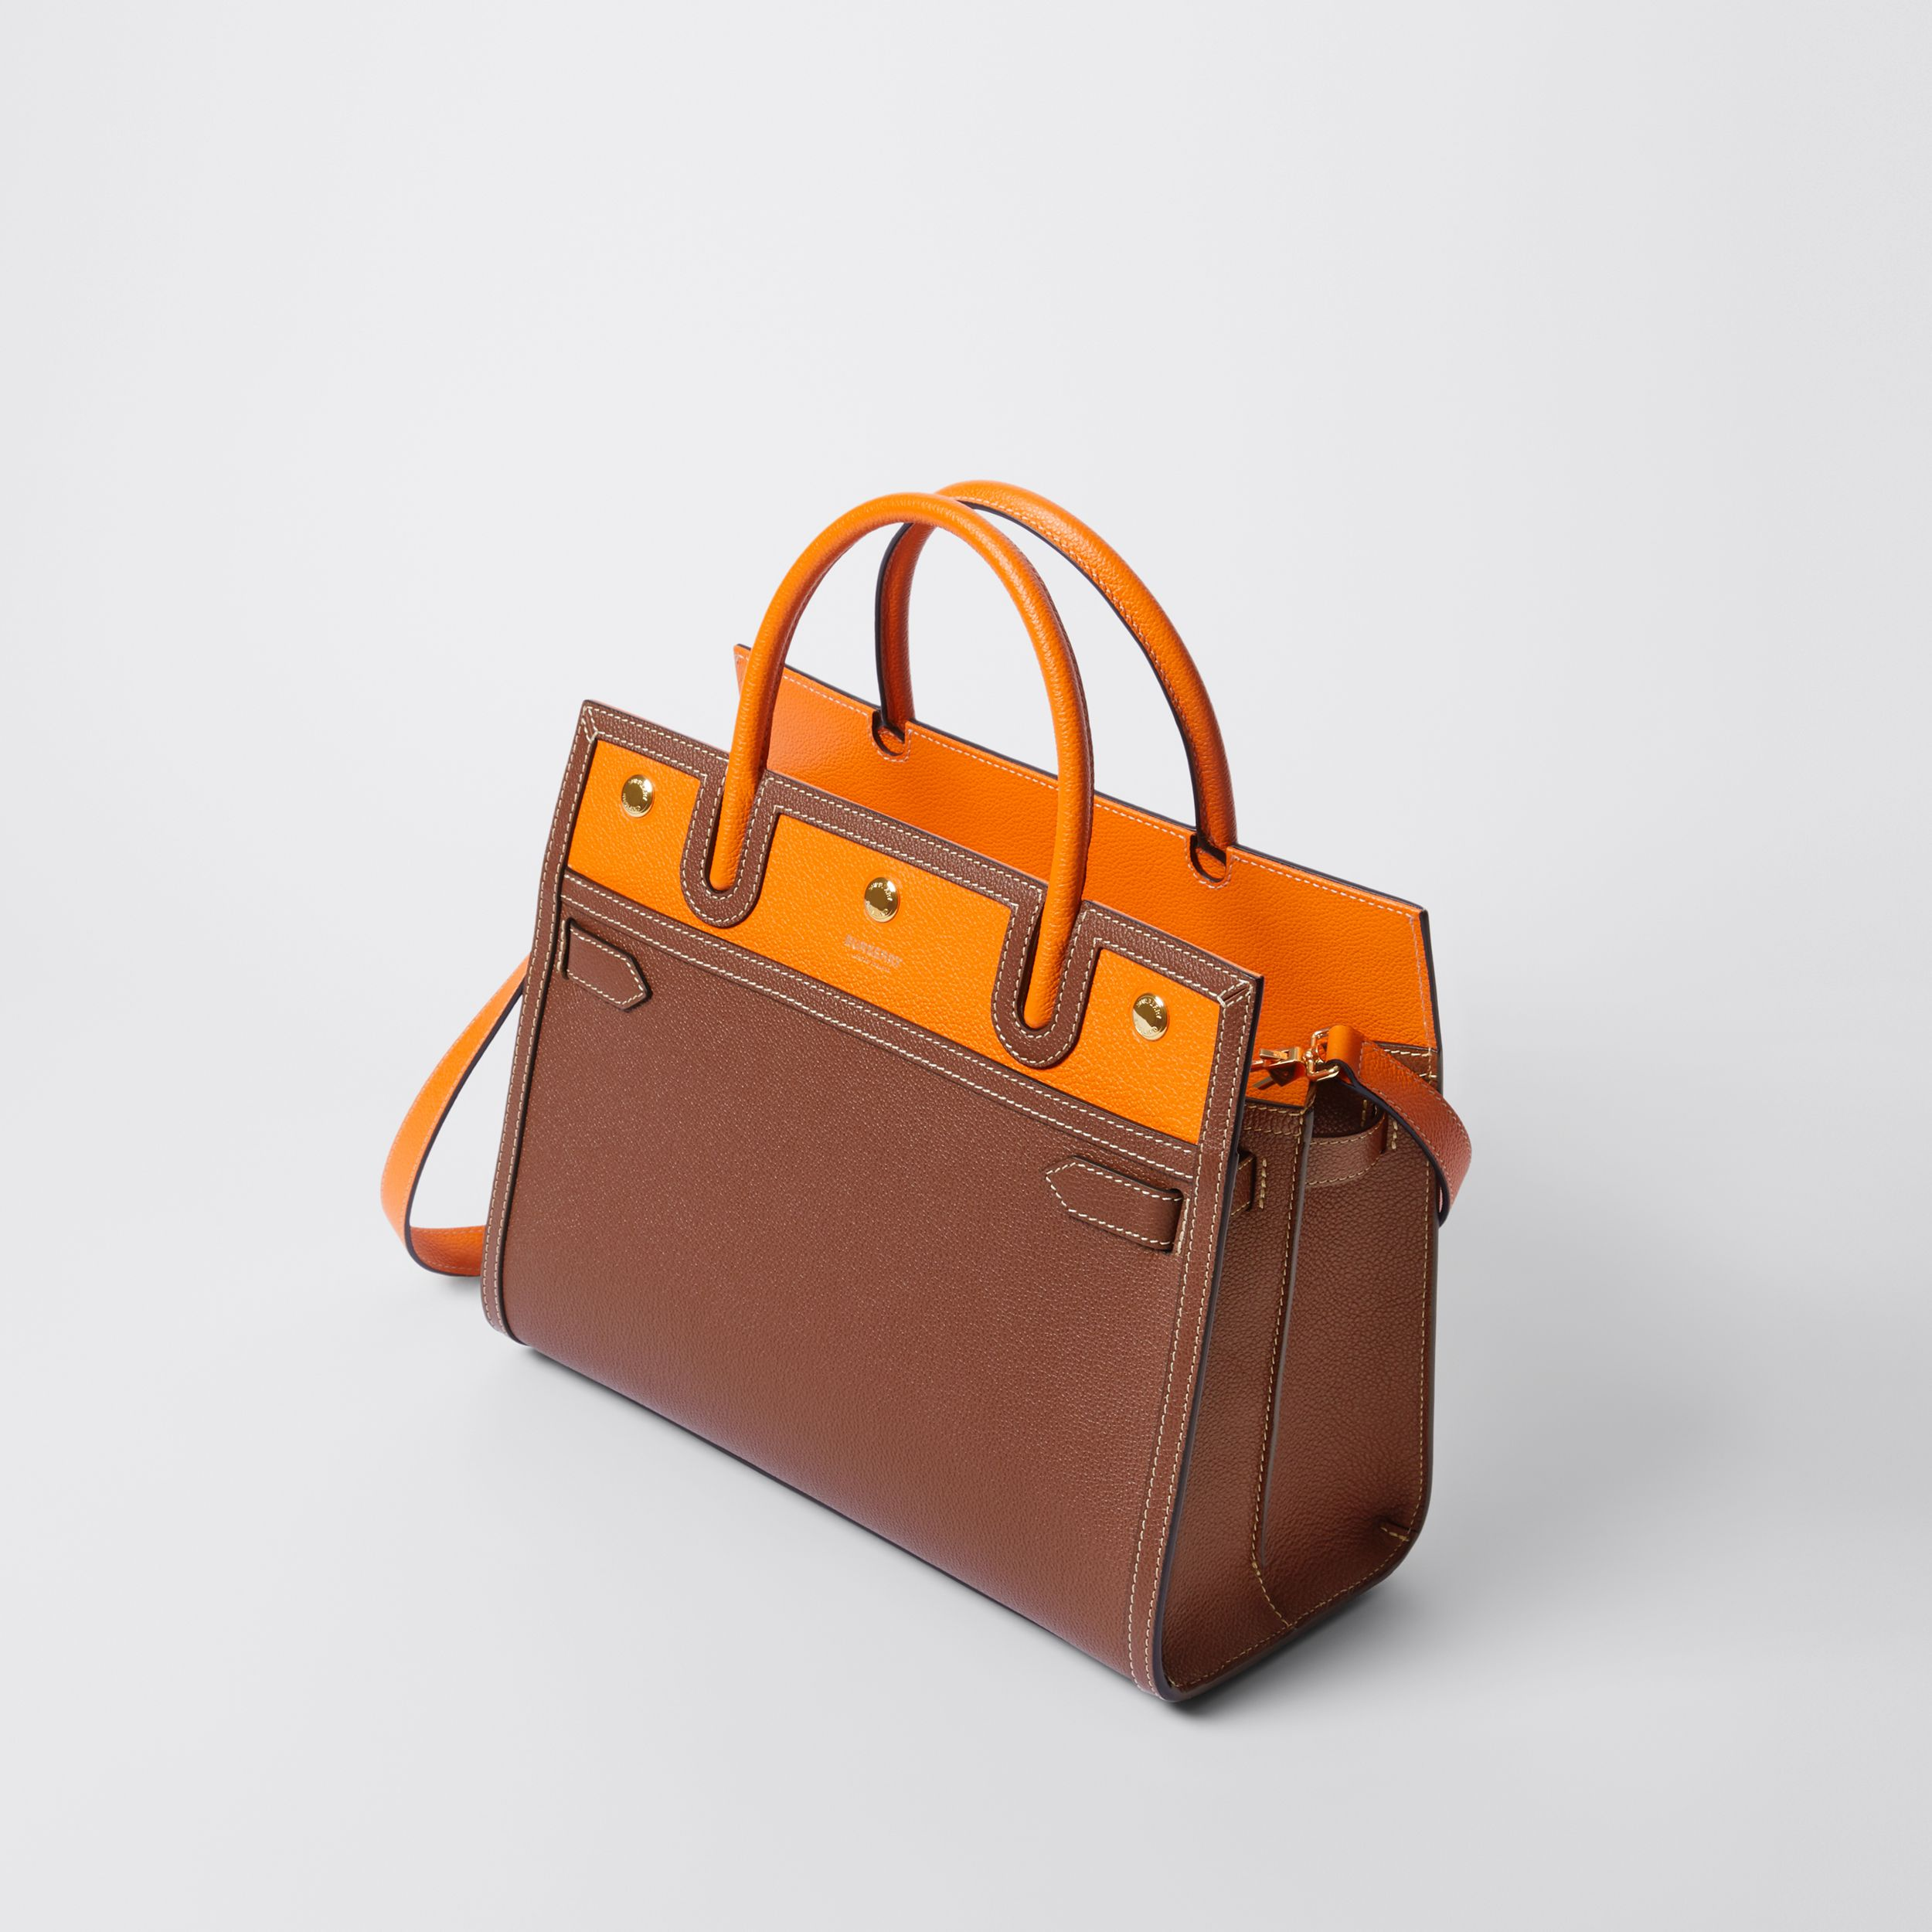 Small Leather Two-handle Title Bag in Tan/bright Orange - Women | Burberry Australia - 4